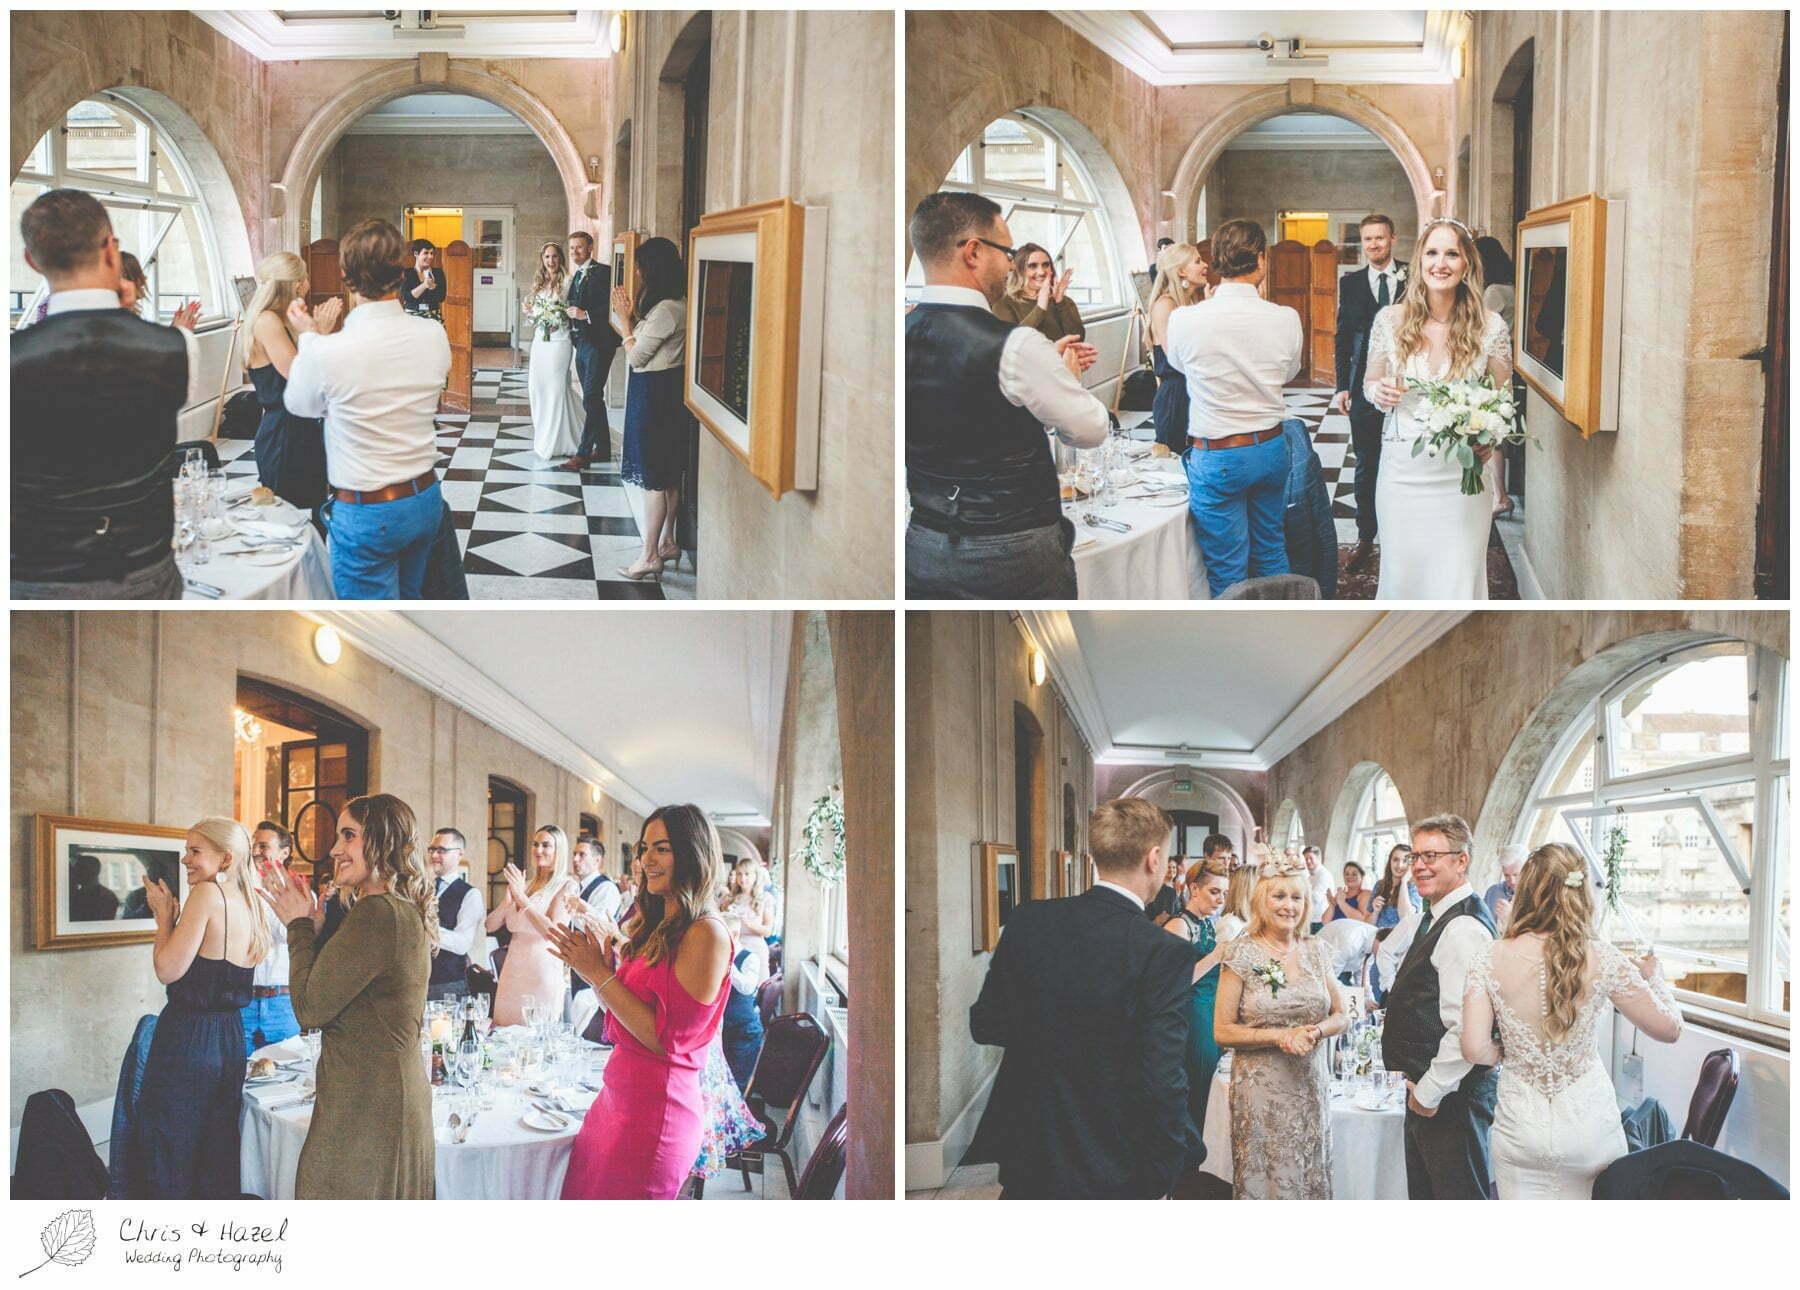 Bride and Groom enter for dinner, wedding breakfast on the terrace at Roman Baths Pump Rooms, The Roman Baths Wedding Photography, Roman Baths Wedding Photographer, Wedding in Bath, Bath Wedding Day, documentary wedding photography, Chris and Hazel Wedding Photography Bath, Andy Frost Sian Upson